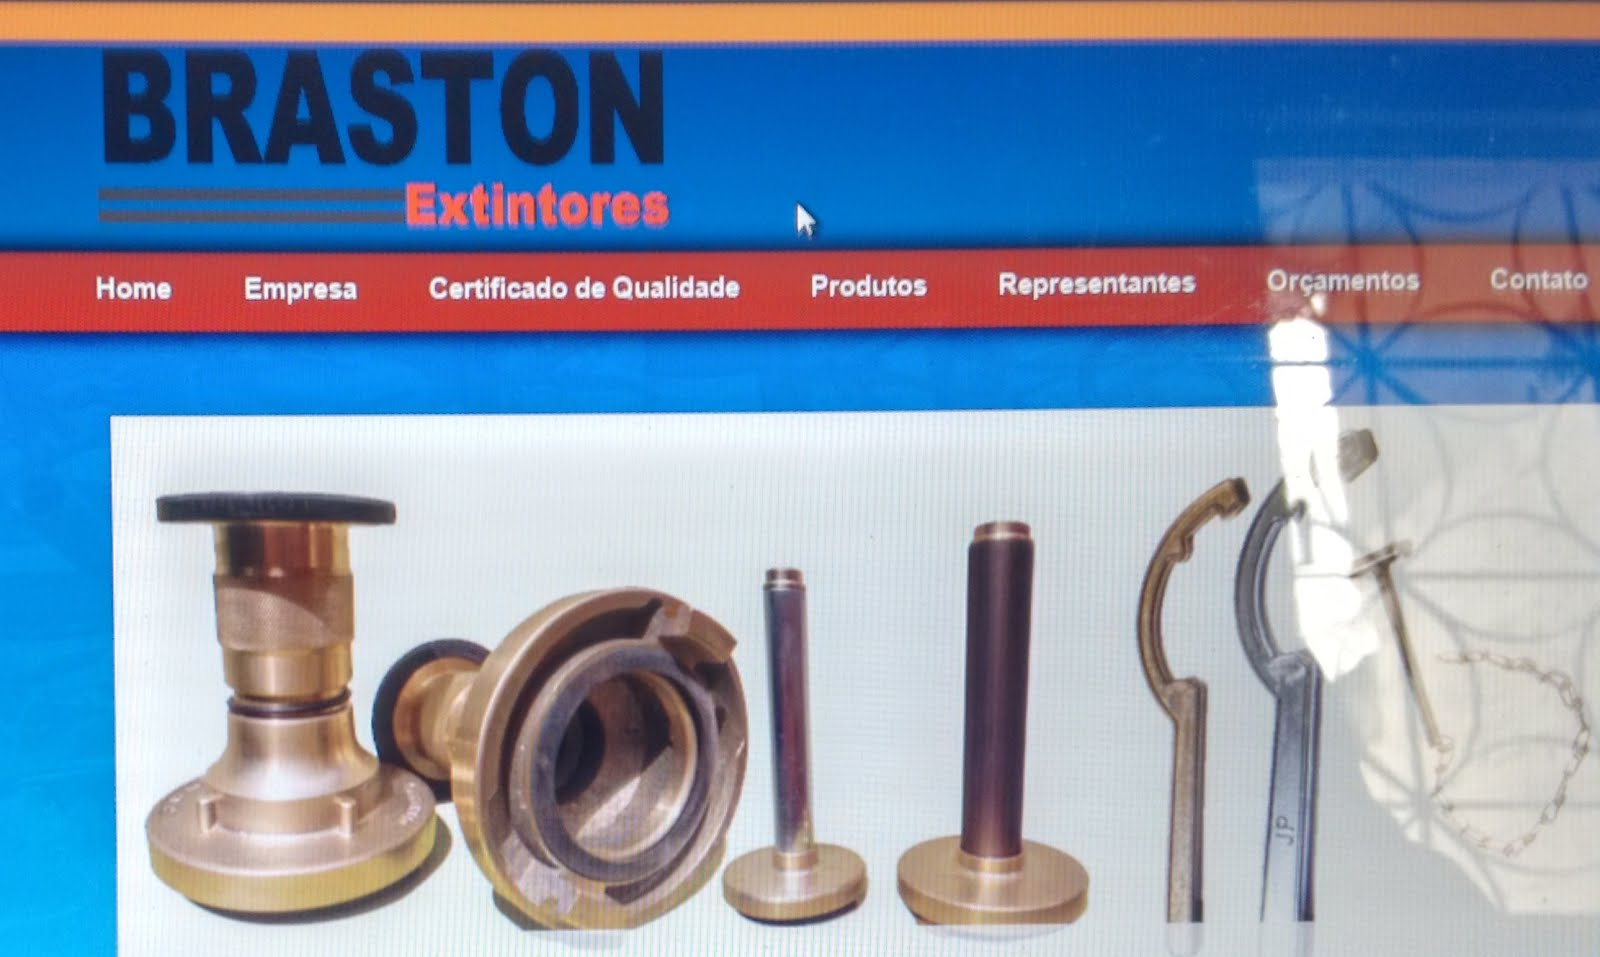 BRASTON EXTINTORES